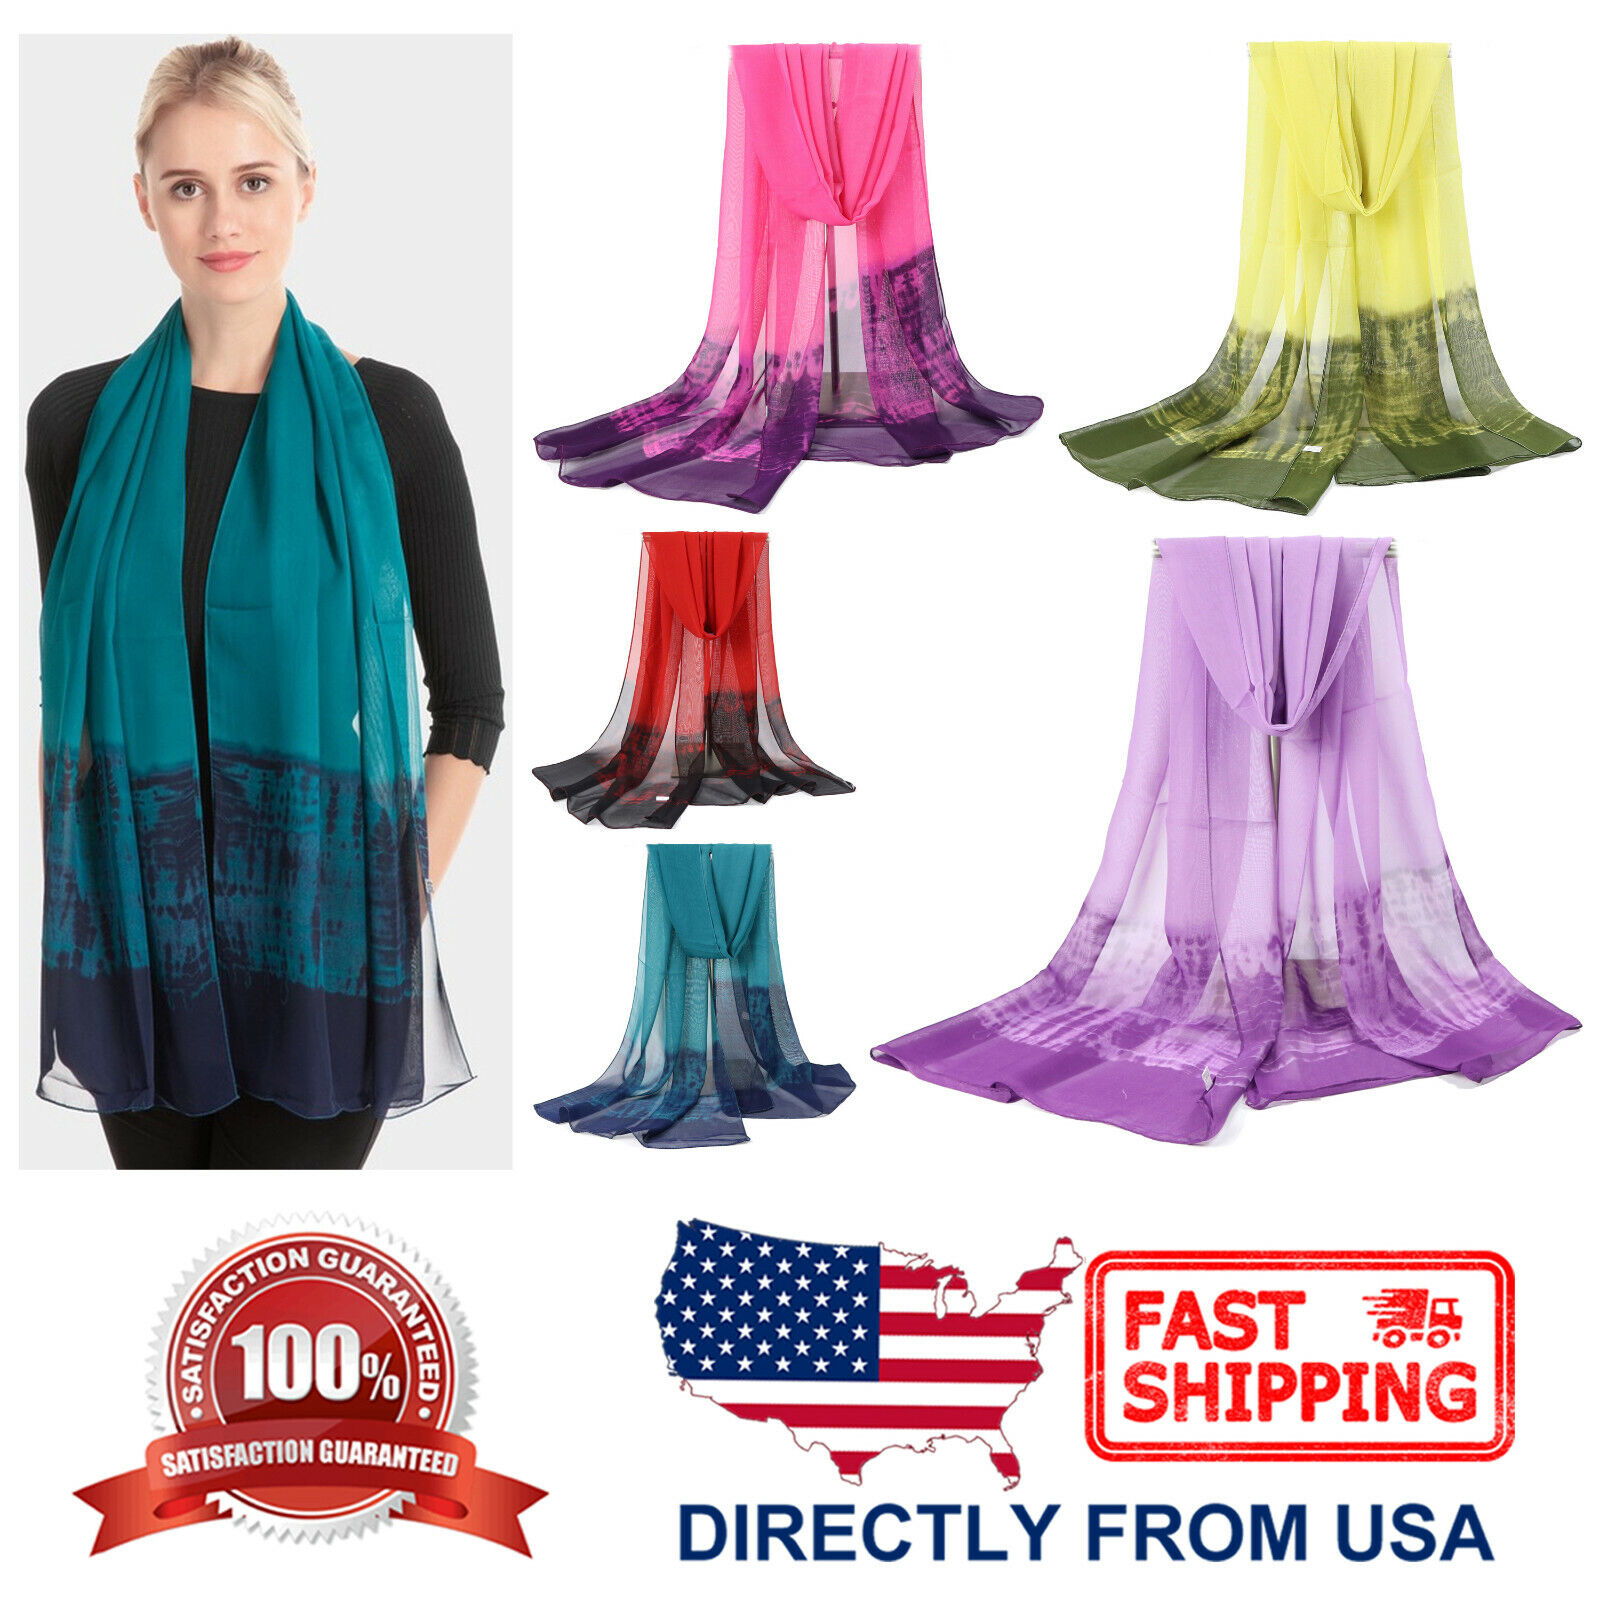 Women's Color Gradient Natural Dye Chiffon Lightweight Beach Wrap Fashion Scarf Clothing, Shoes & Accessories